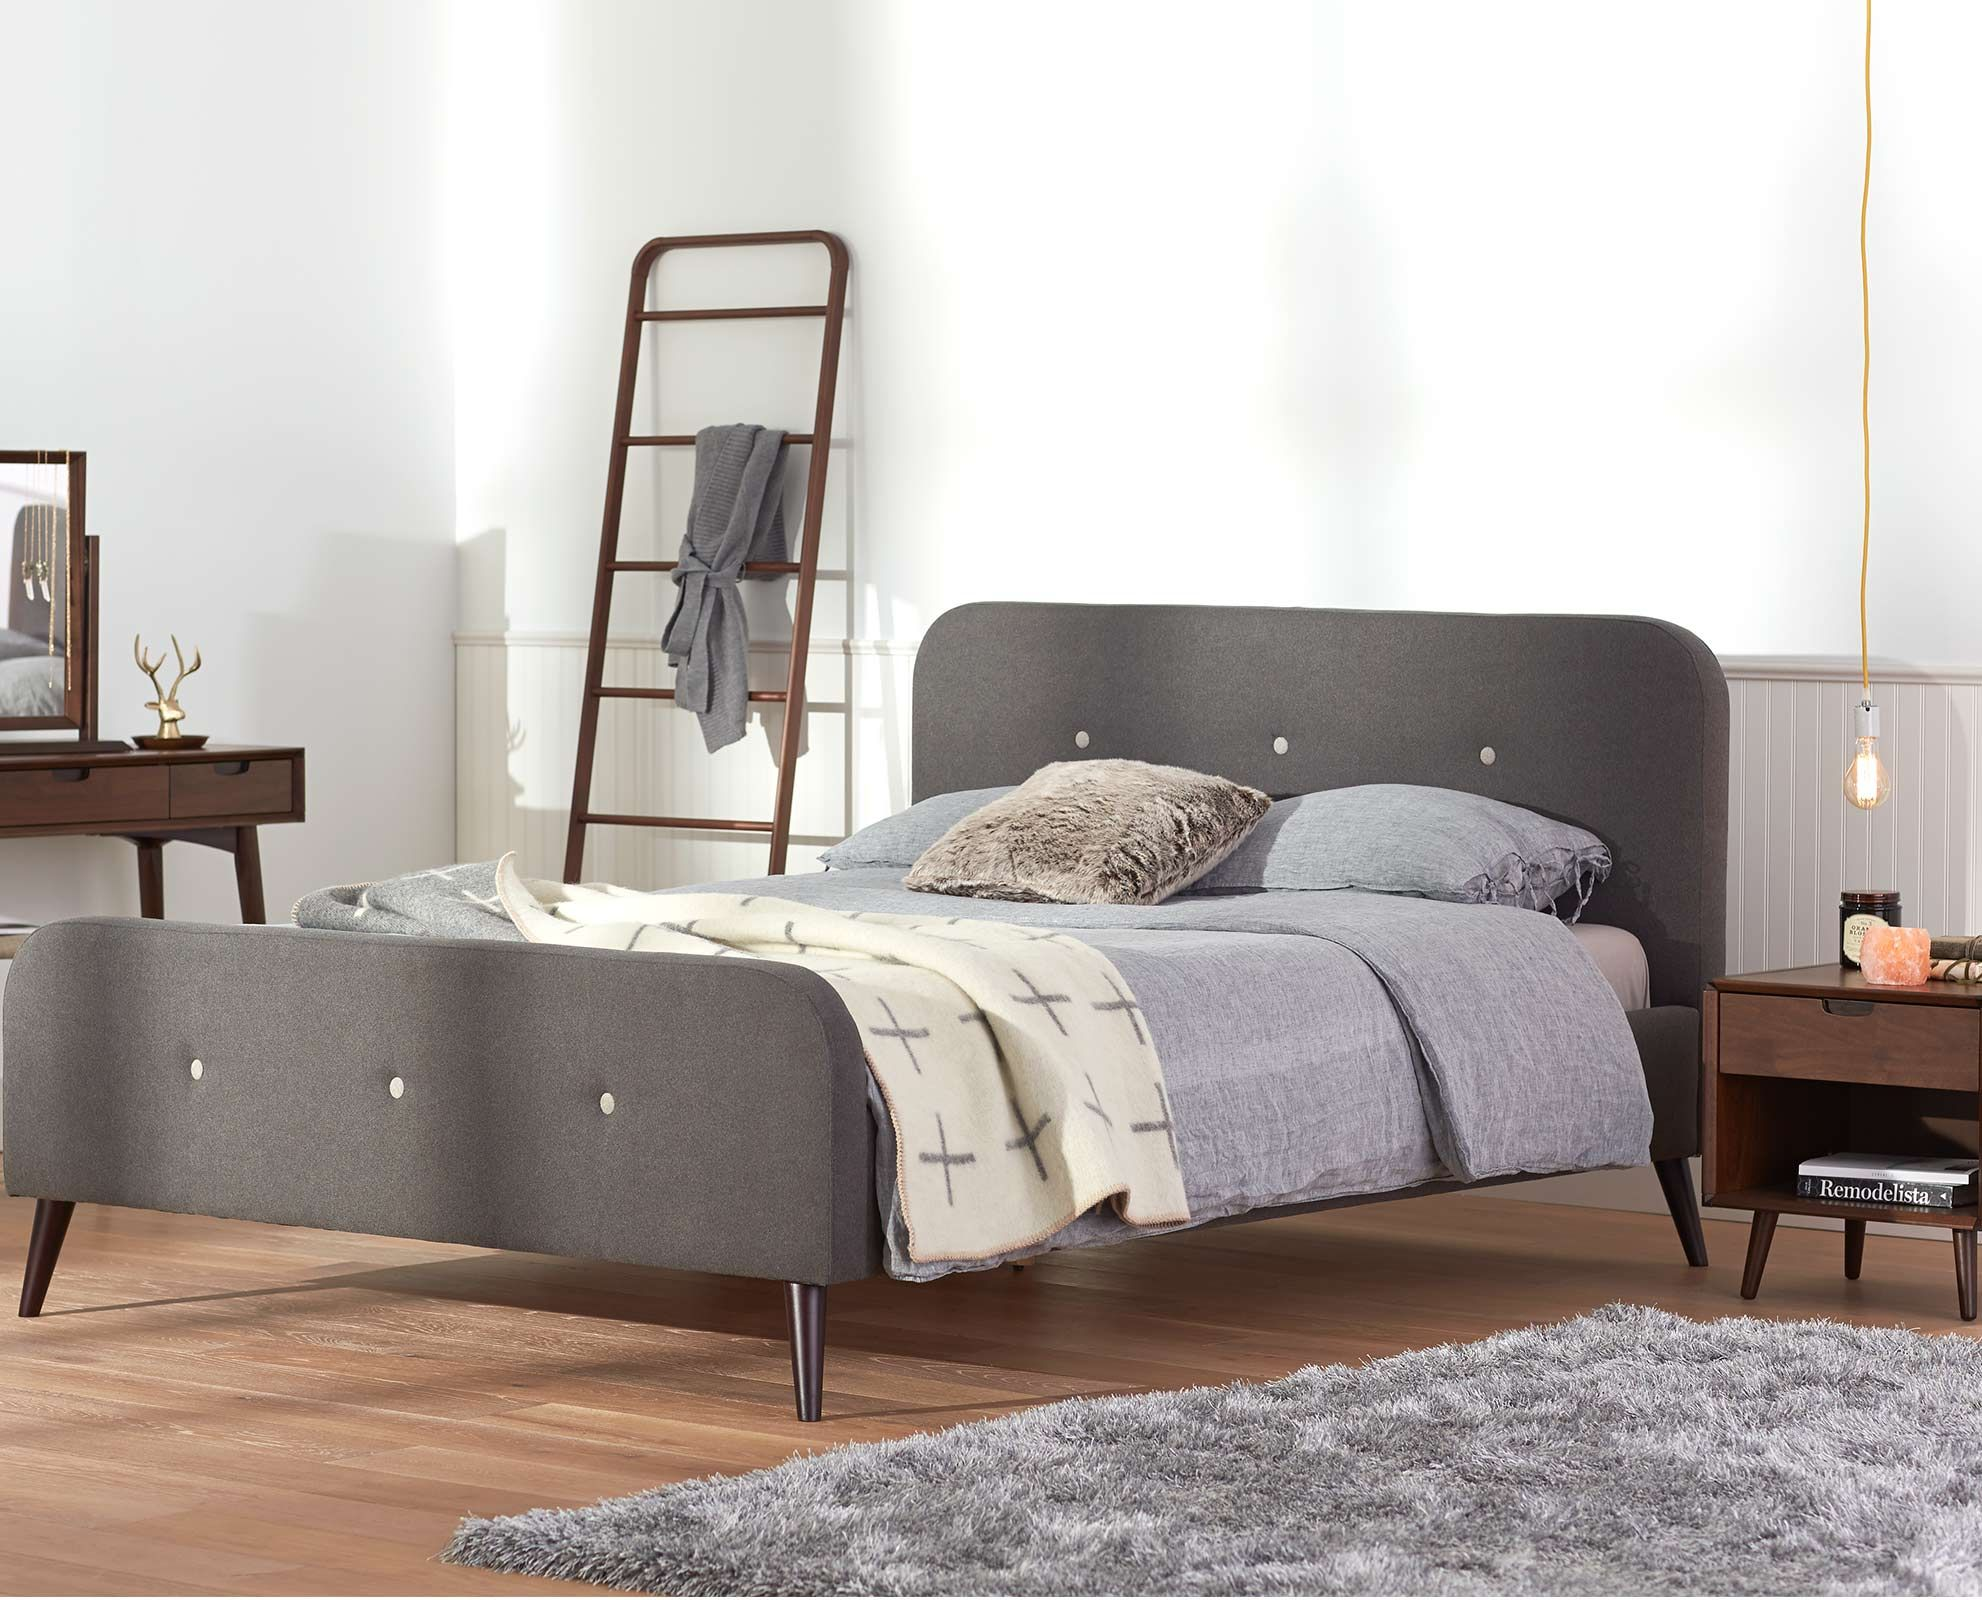 cool New Scandinavian Bedroom Furniture 46 For Interior Decor Home ...